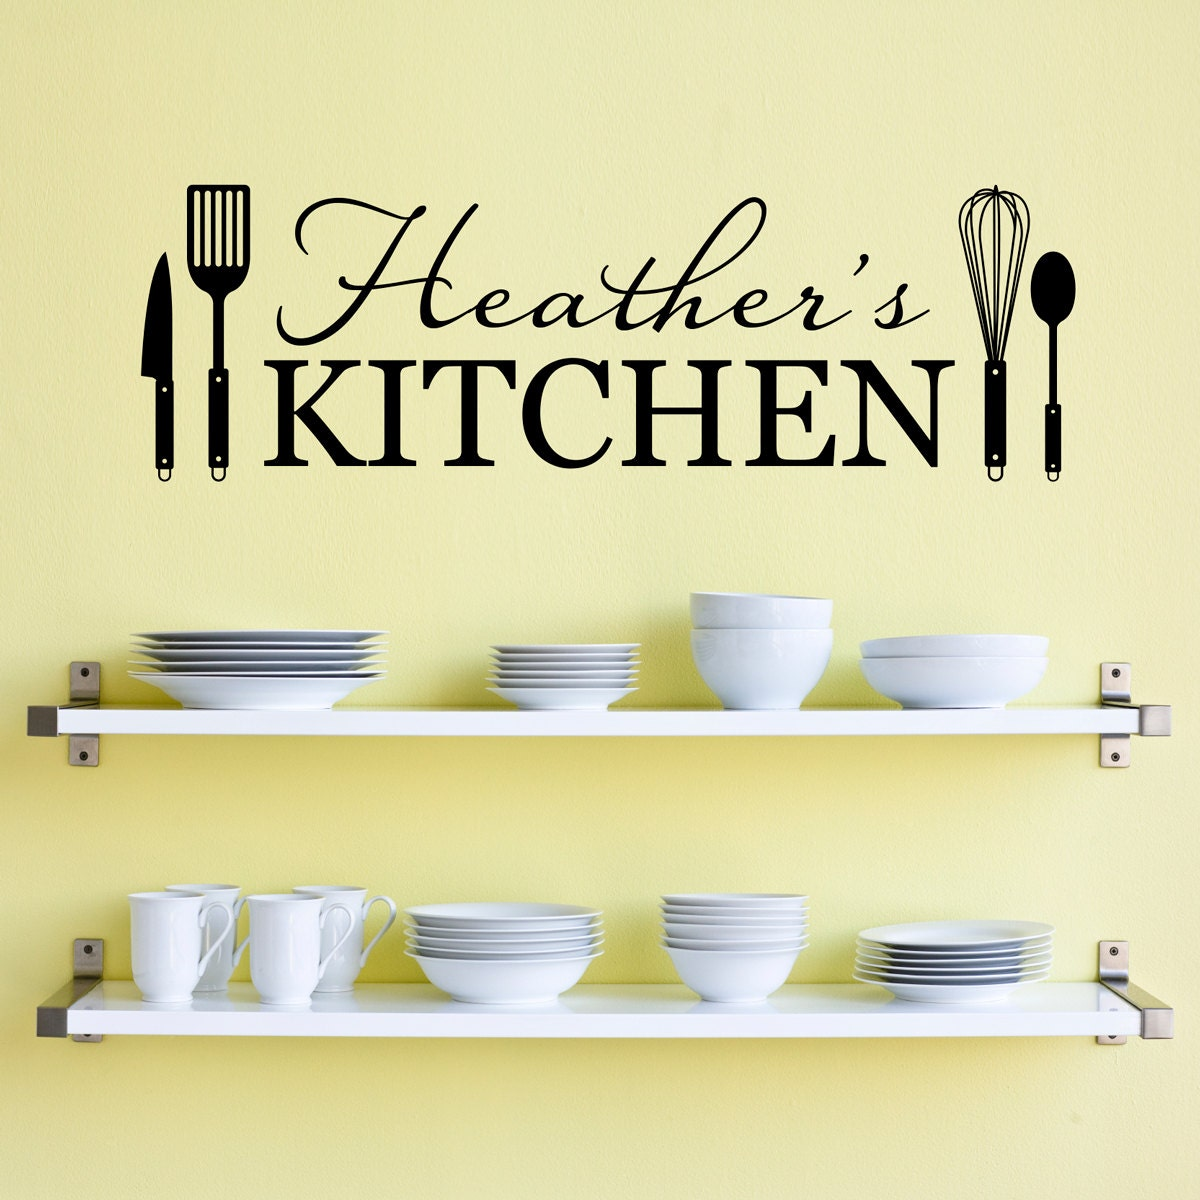 Personalized name kitchen wall decal kitchen utensils wall - Kitchen wall stickers decor ...